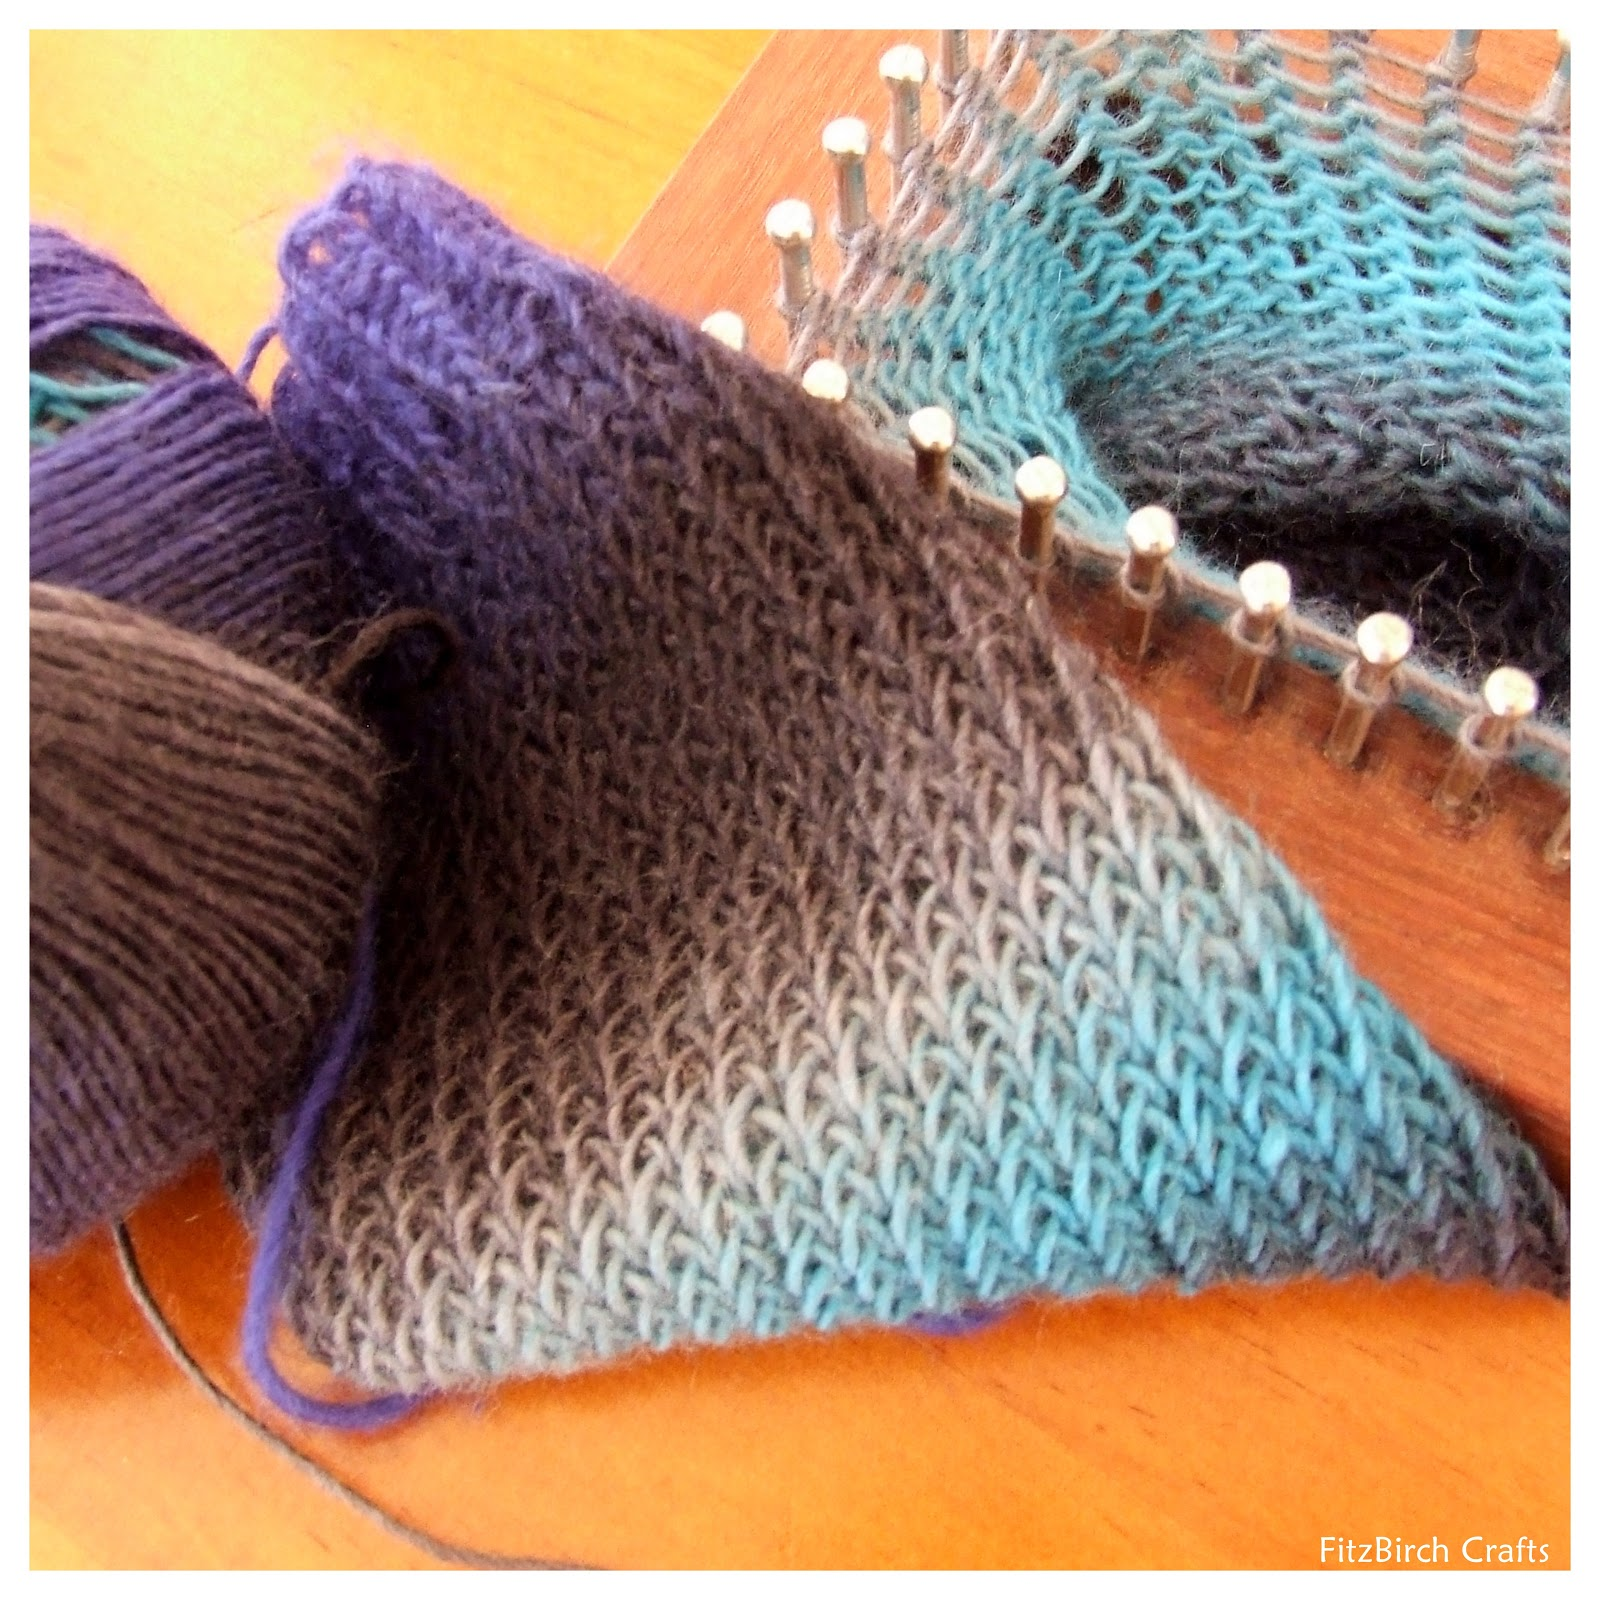 FitzBirch Crafts: Loom Knit Socks